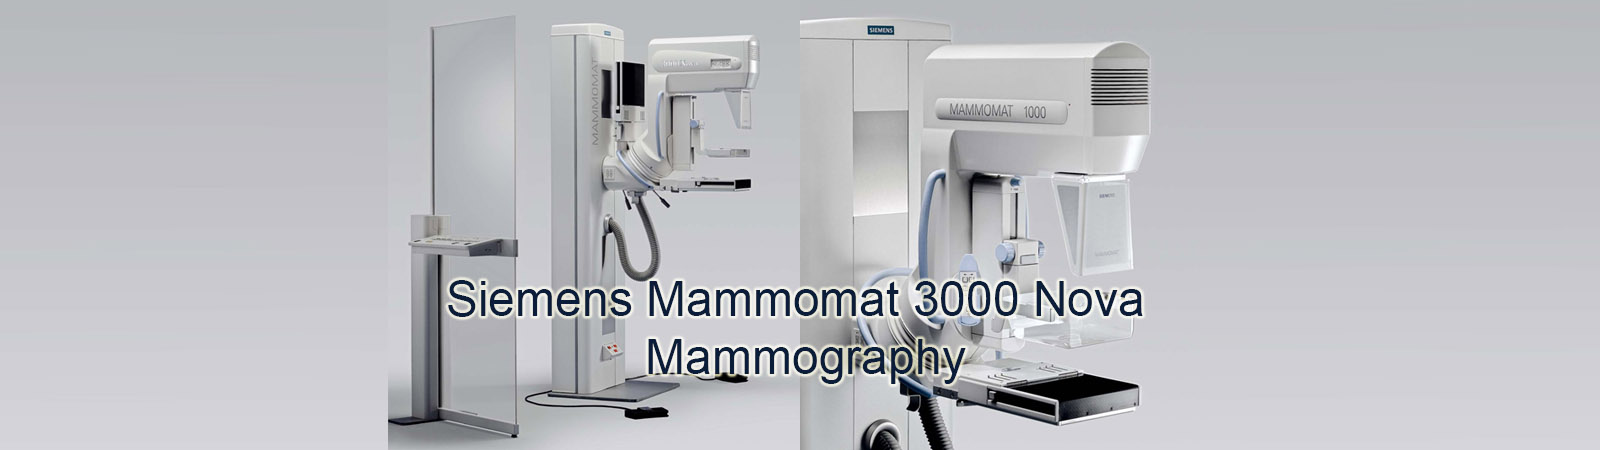 Refurbished Siemens MAMMOMAT 3000 Nova Mammography Machine